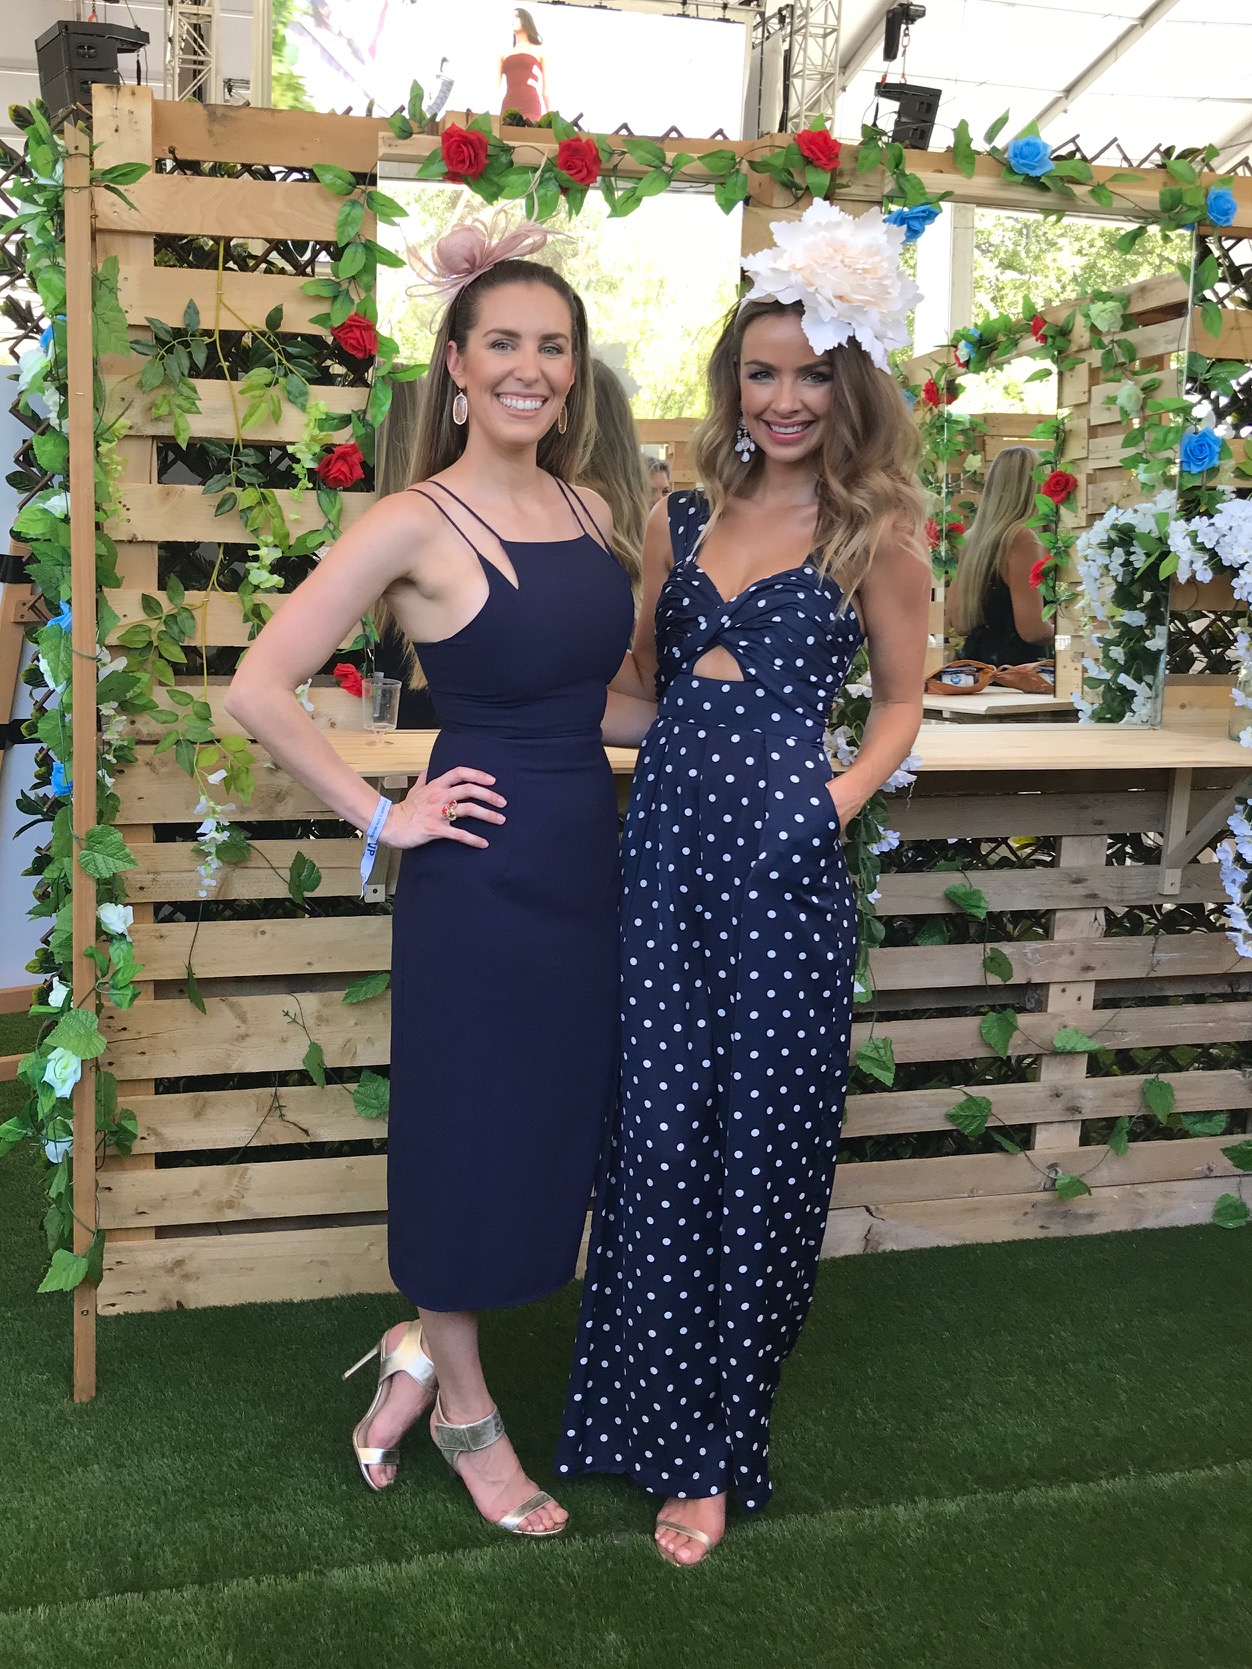 Giddy Up - Spring Racing Carnival Derby Day Melbourne Cup - Perth Blogger - Katie Rebekah